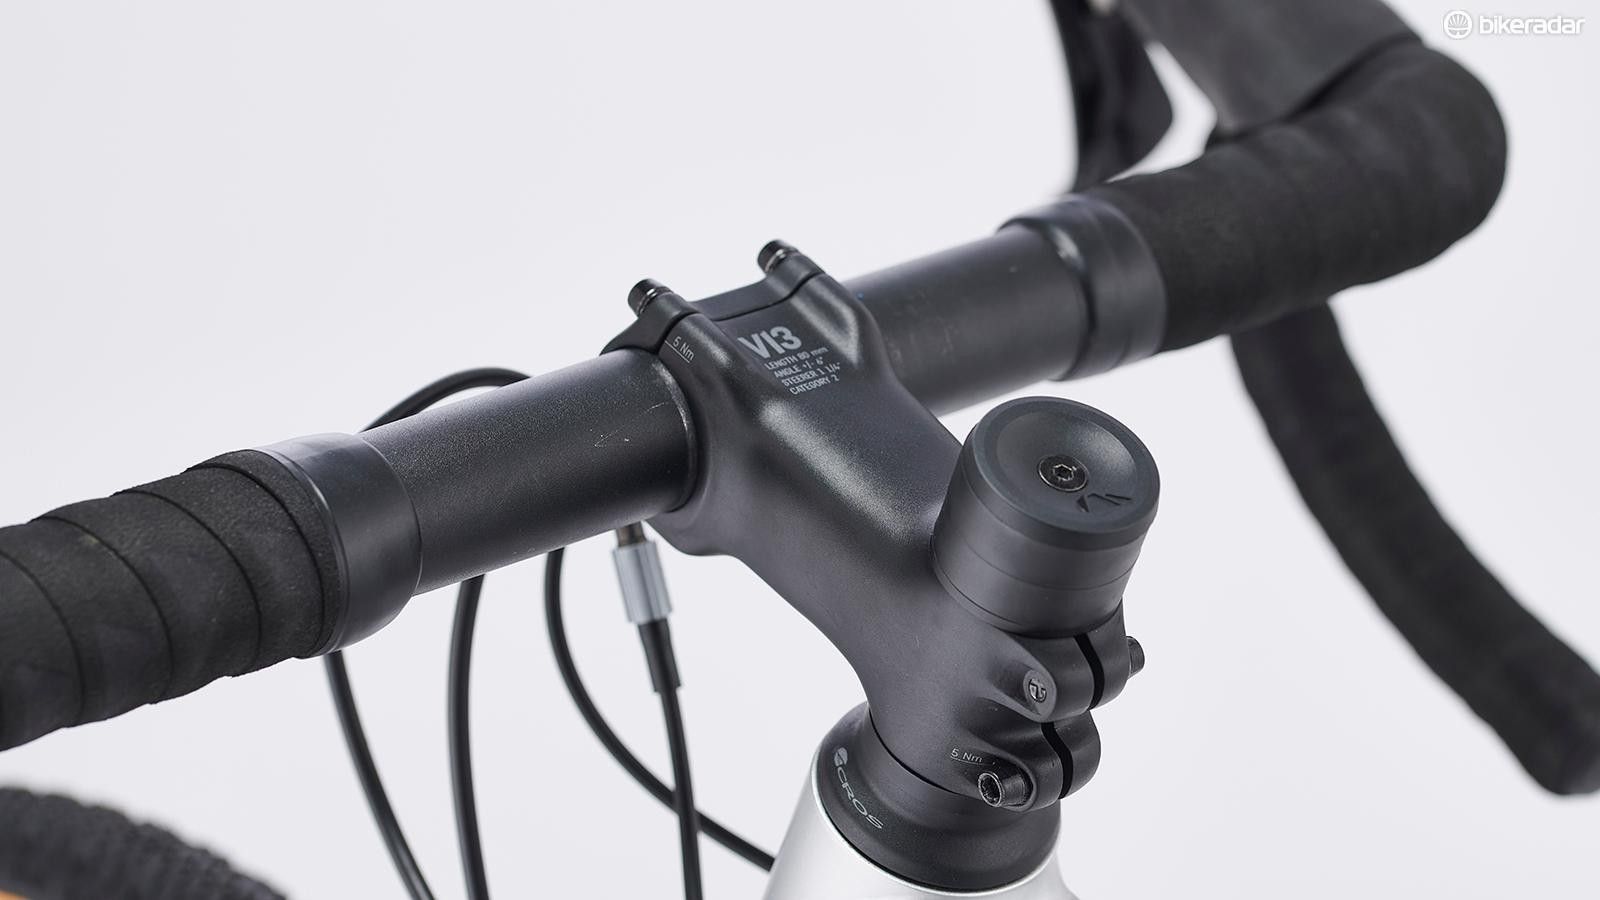 Canyon's gravel alloy handlebar is a little wider and has flared drops